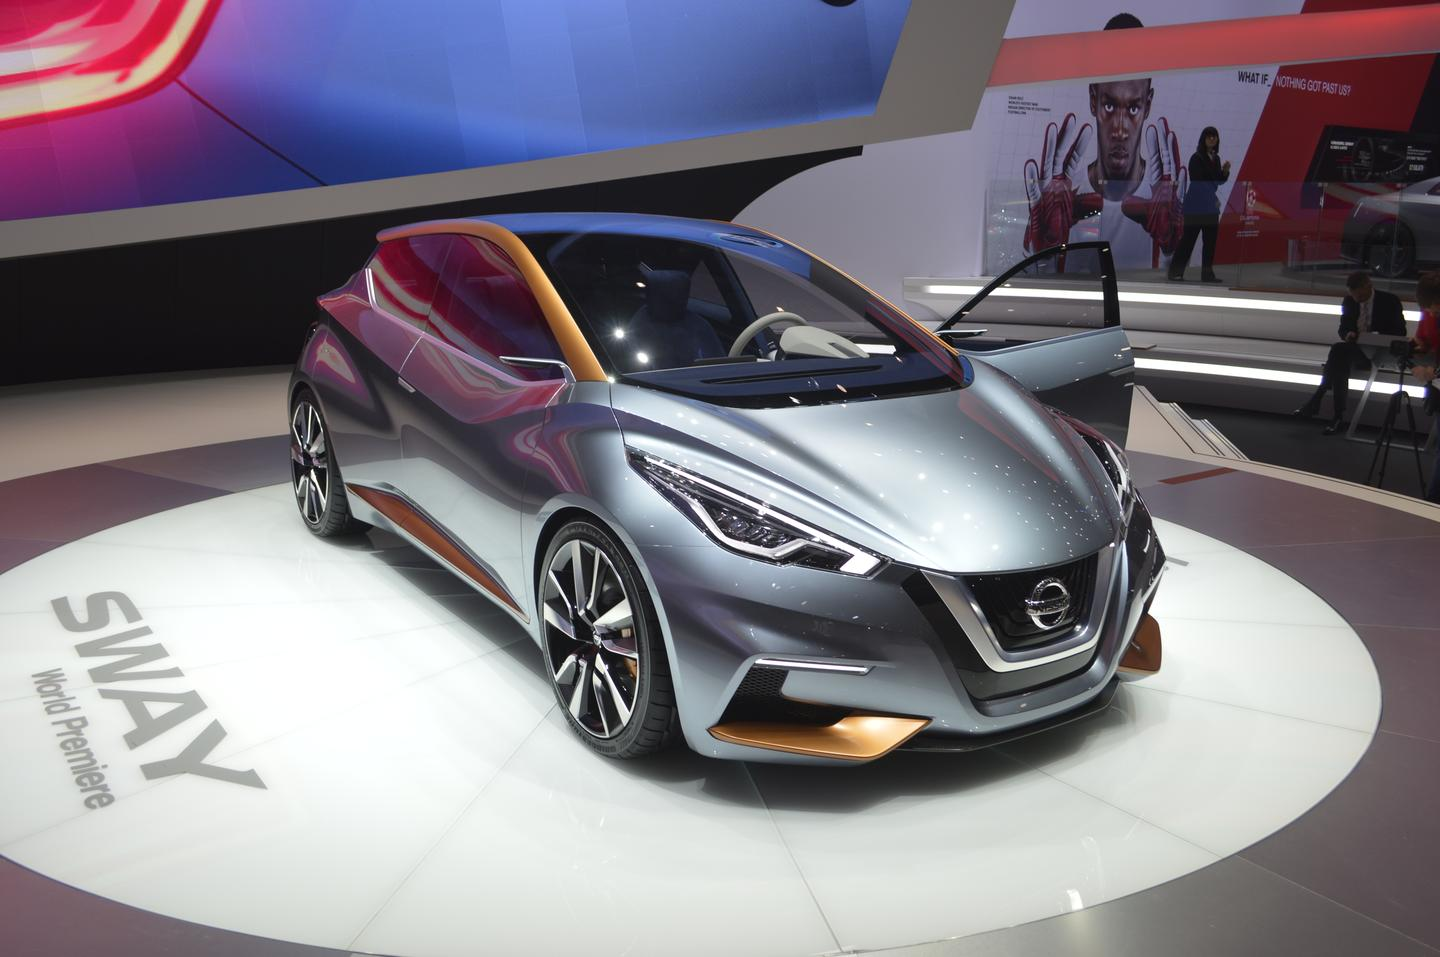 The Nissan Sway is a new compact hatchback concept (Photo: C.C. Weiss/Gizmag)